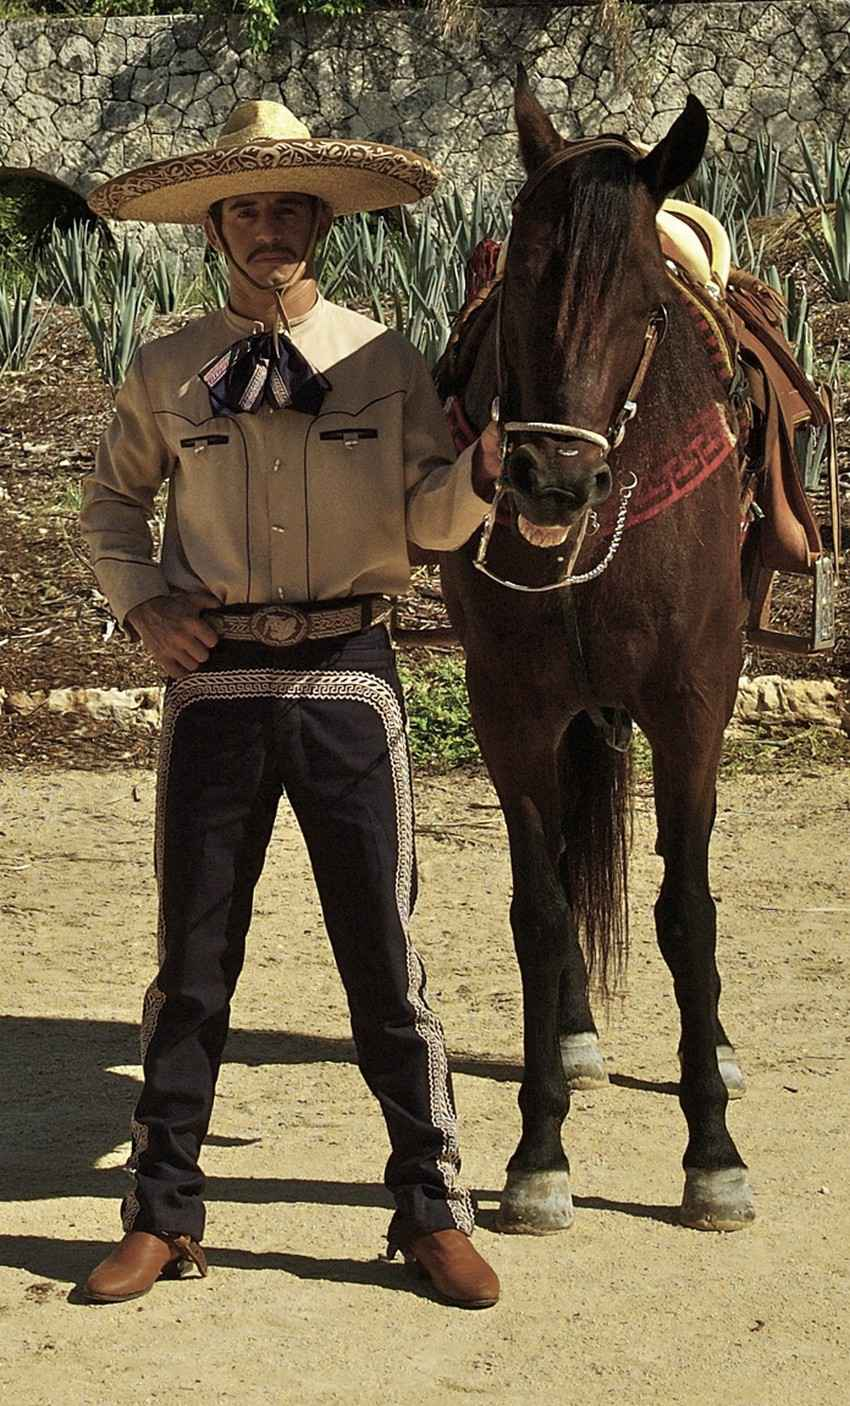 A traditional Mexican male horse rider.